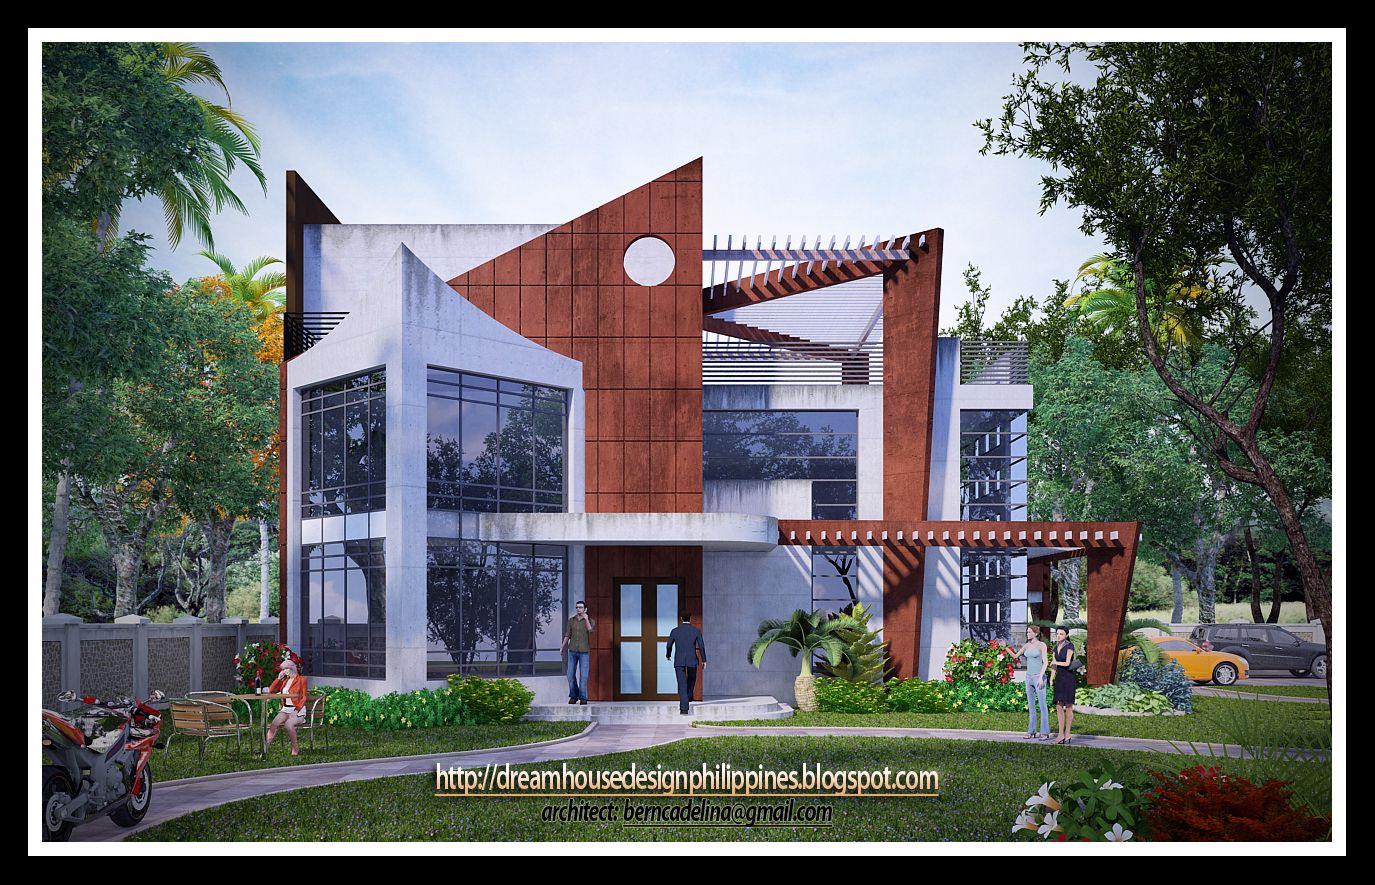 Architecture Design Houses Philippines architecture design houses philippines fascinating beautiful